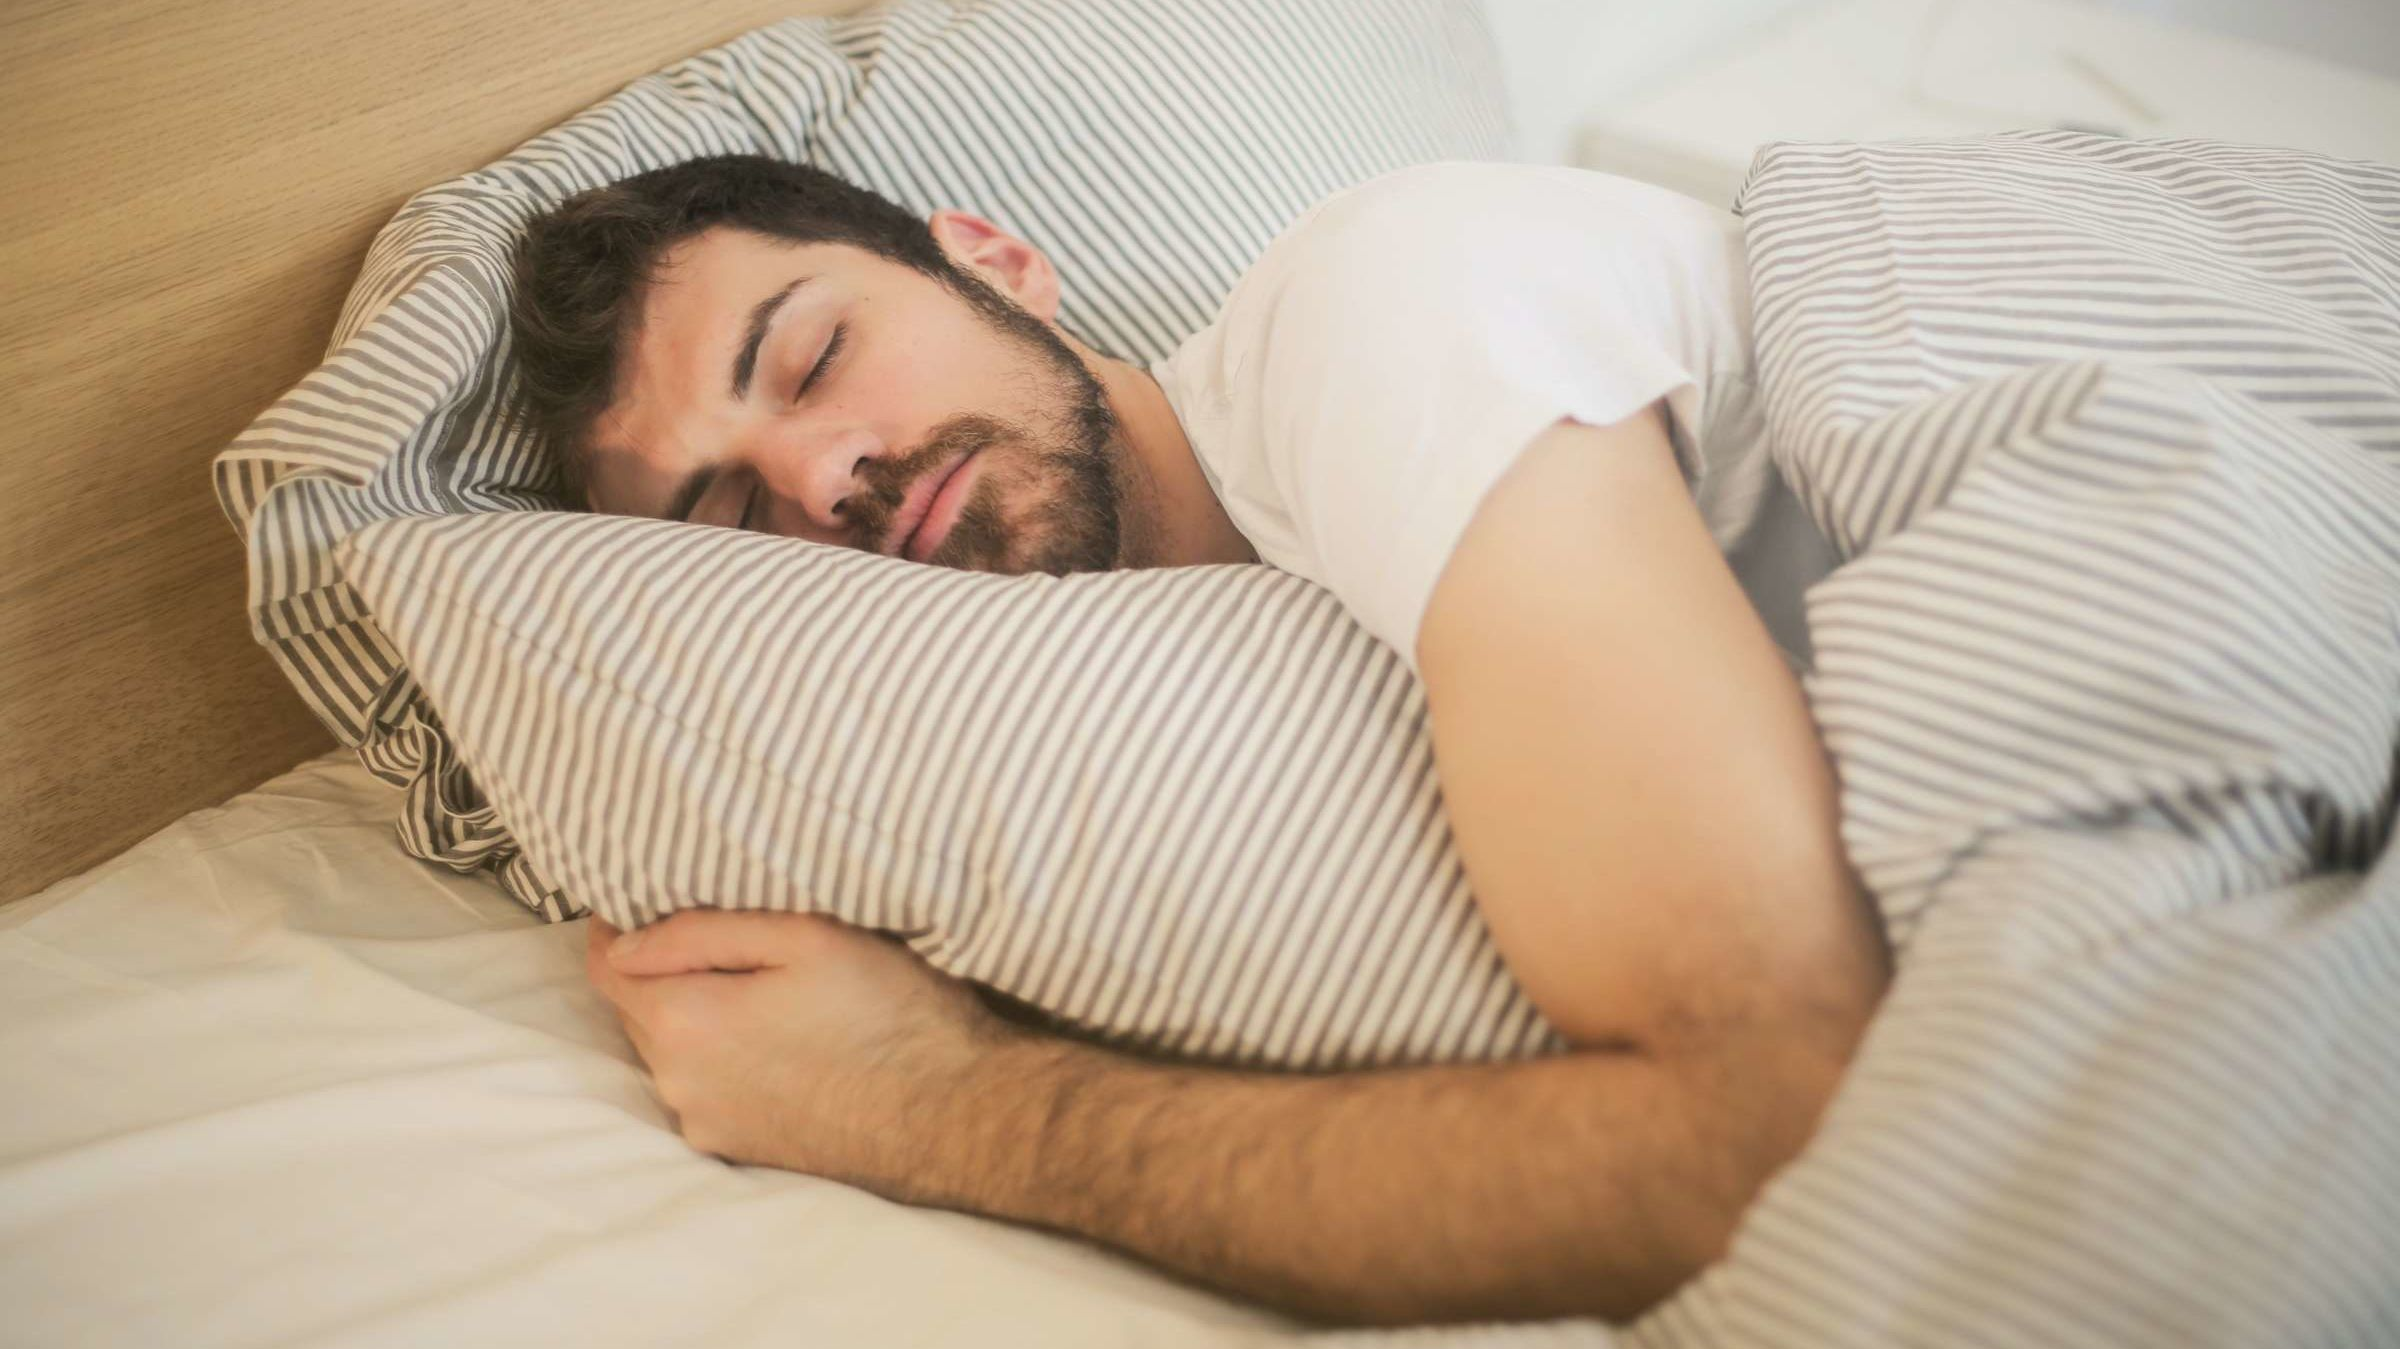 Want to Fall Asleep Faster? Try This Breathing Technique